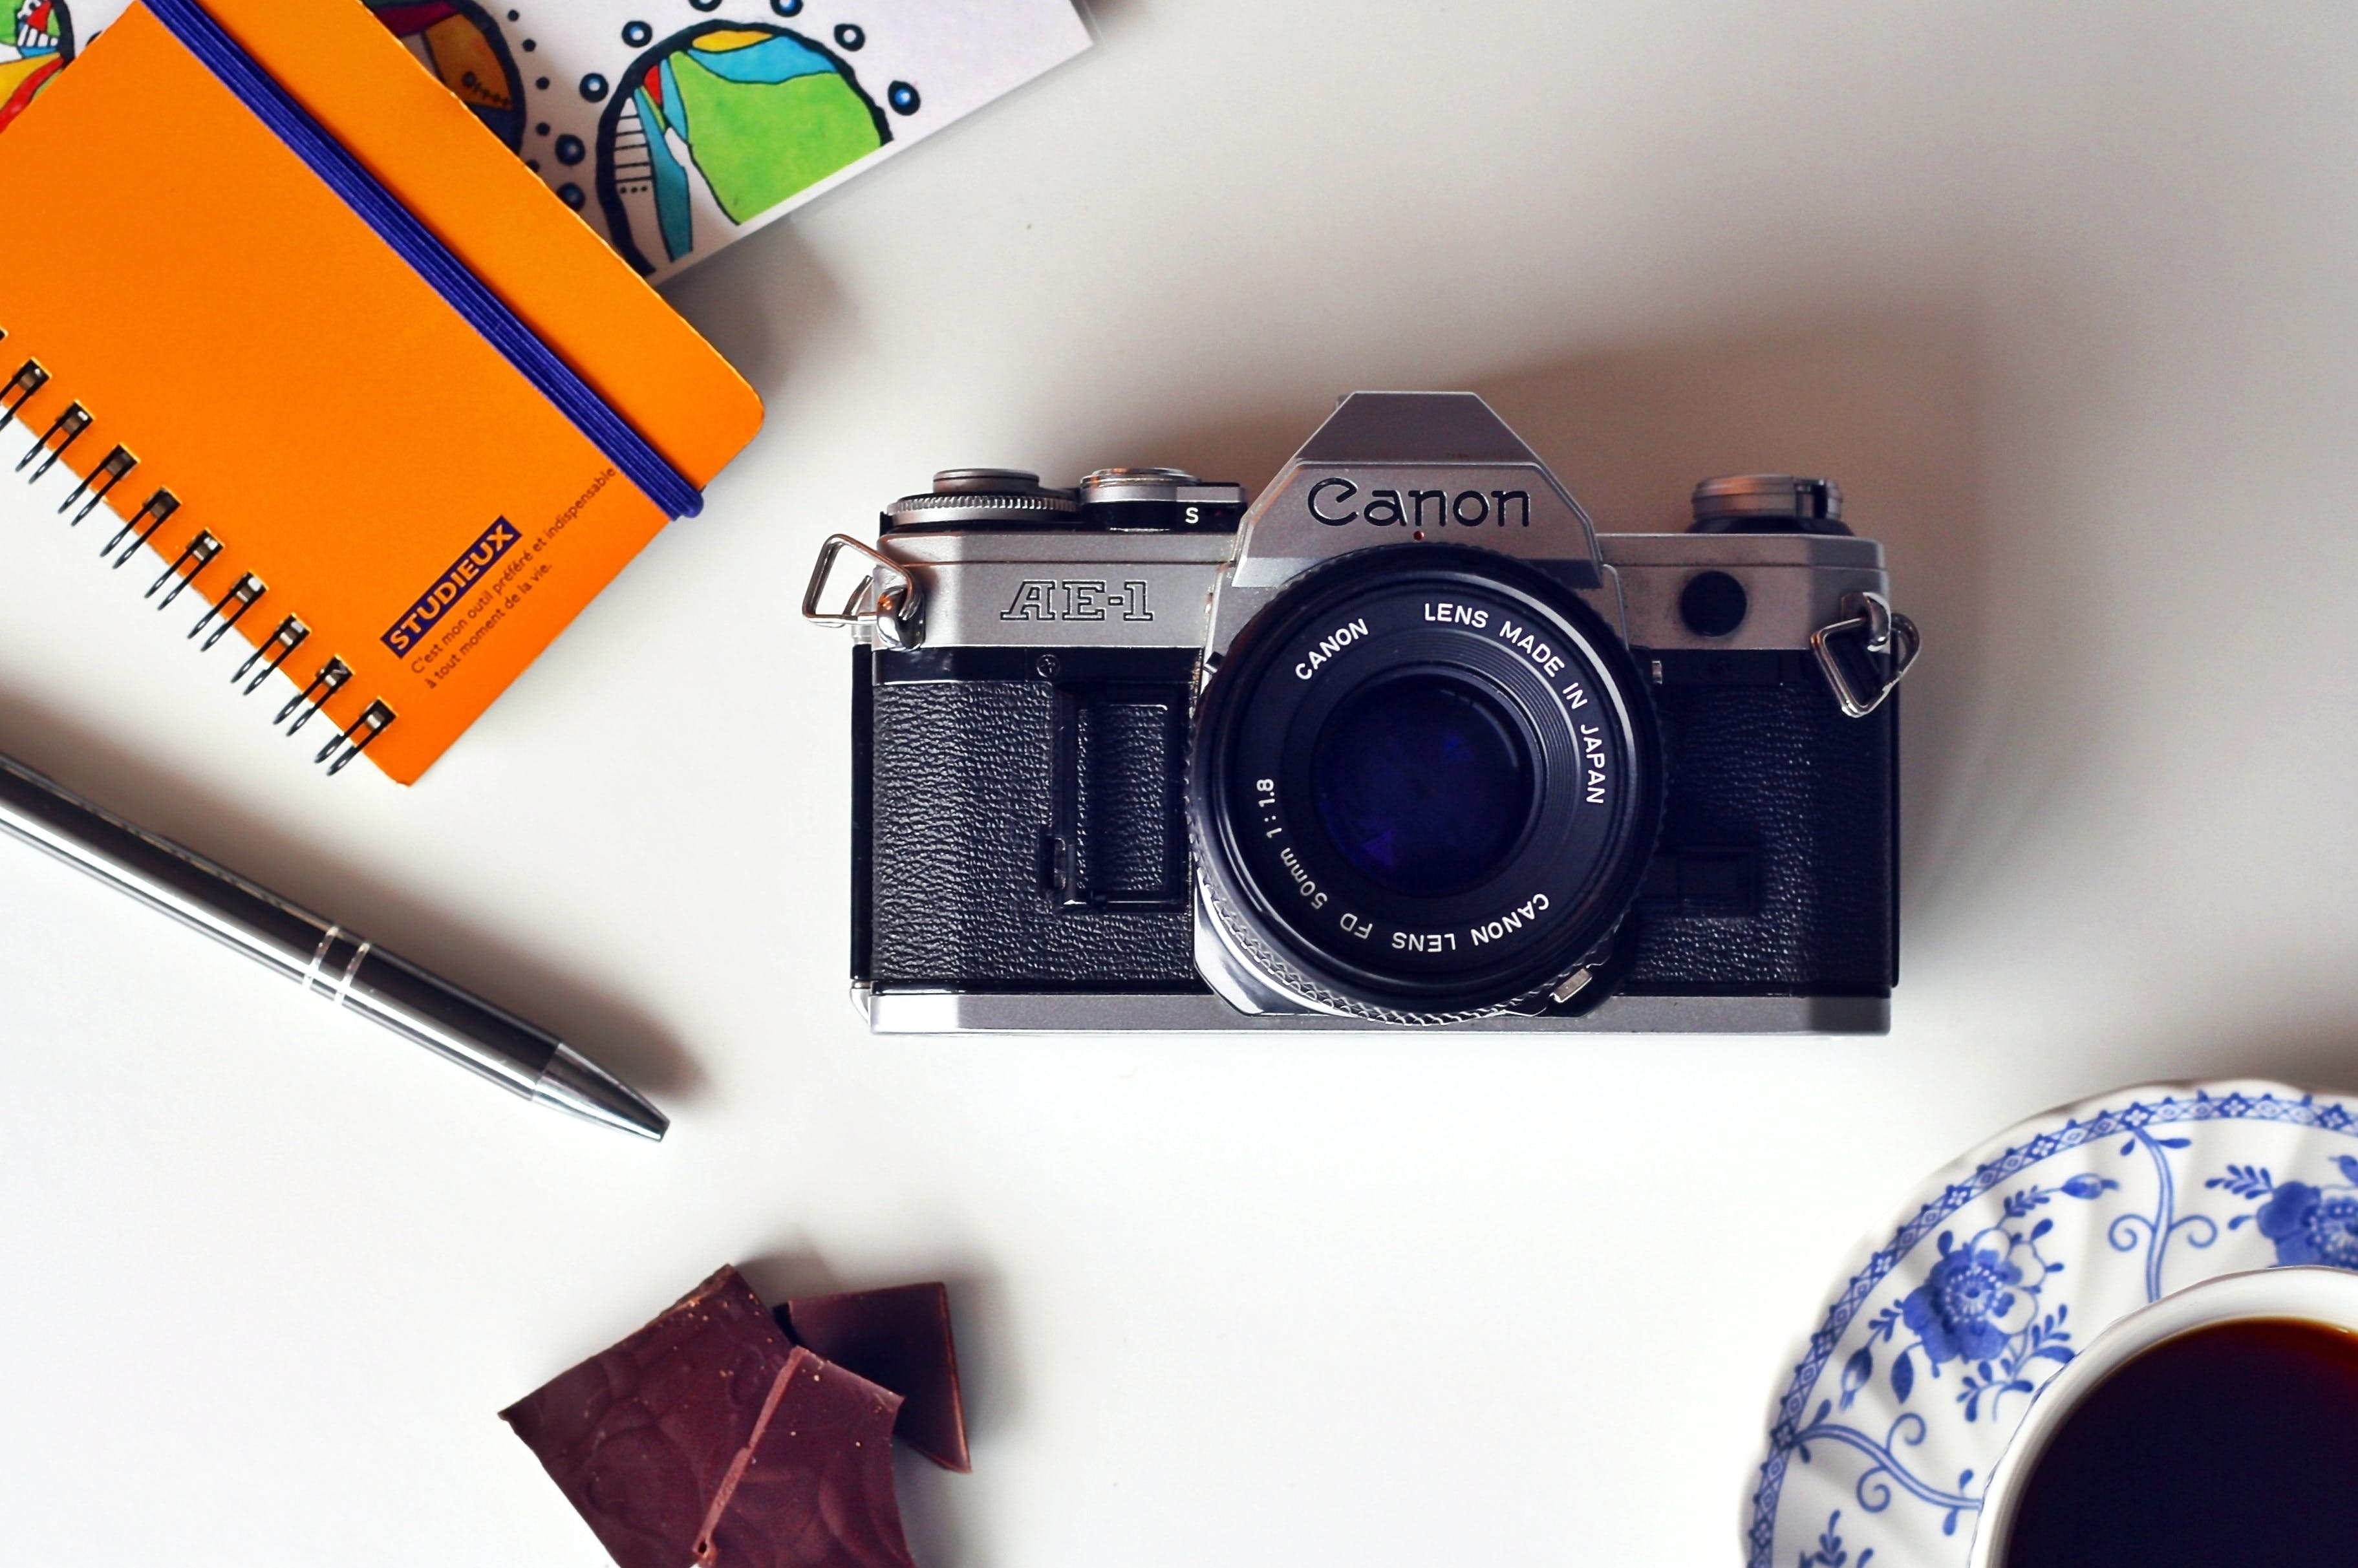 Gray and Black Canon Mirrorless Camera Beside Blue and White Ceramic Plate